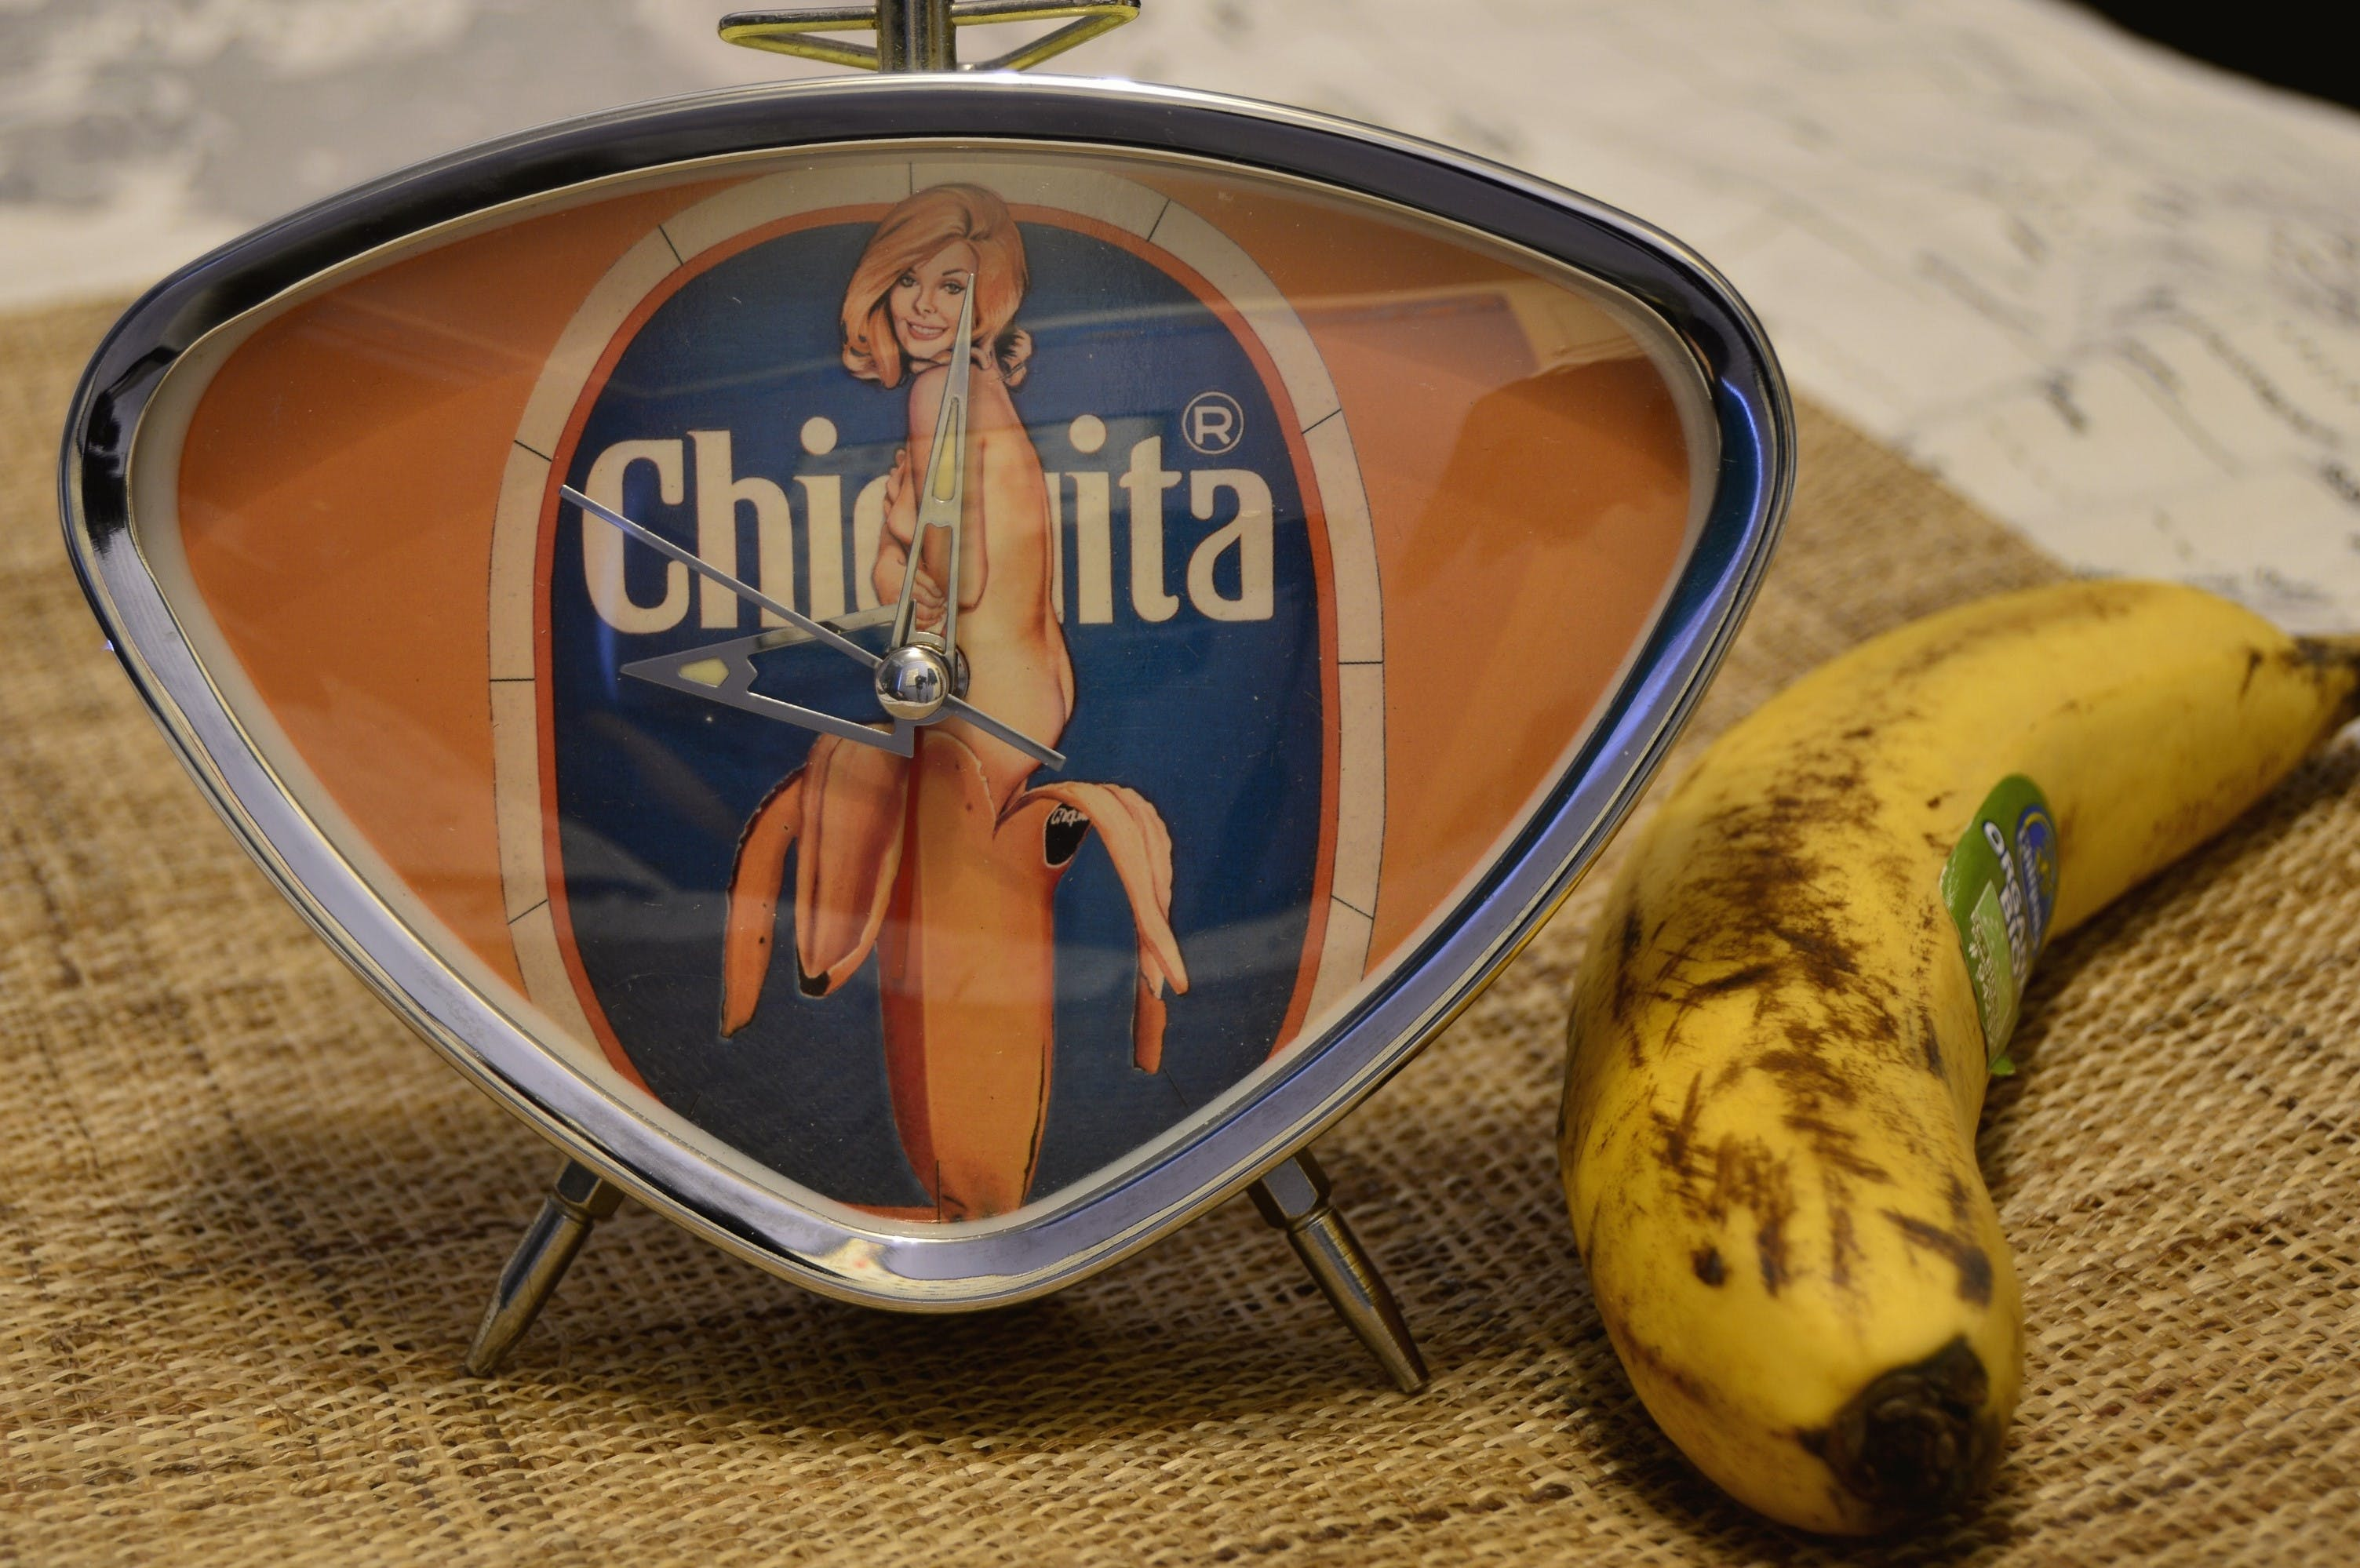 Free stock photo of banana, chiquita, clock, fruit